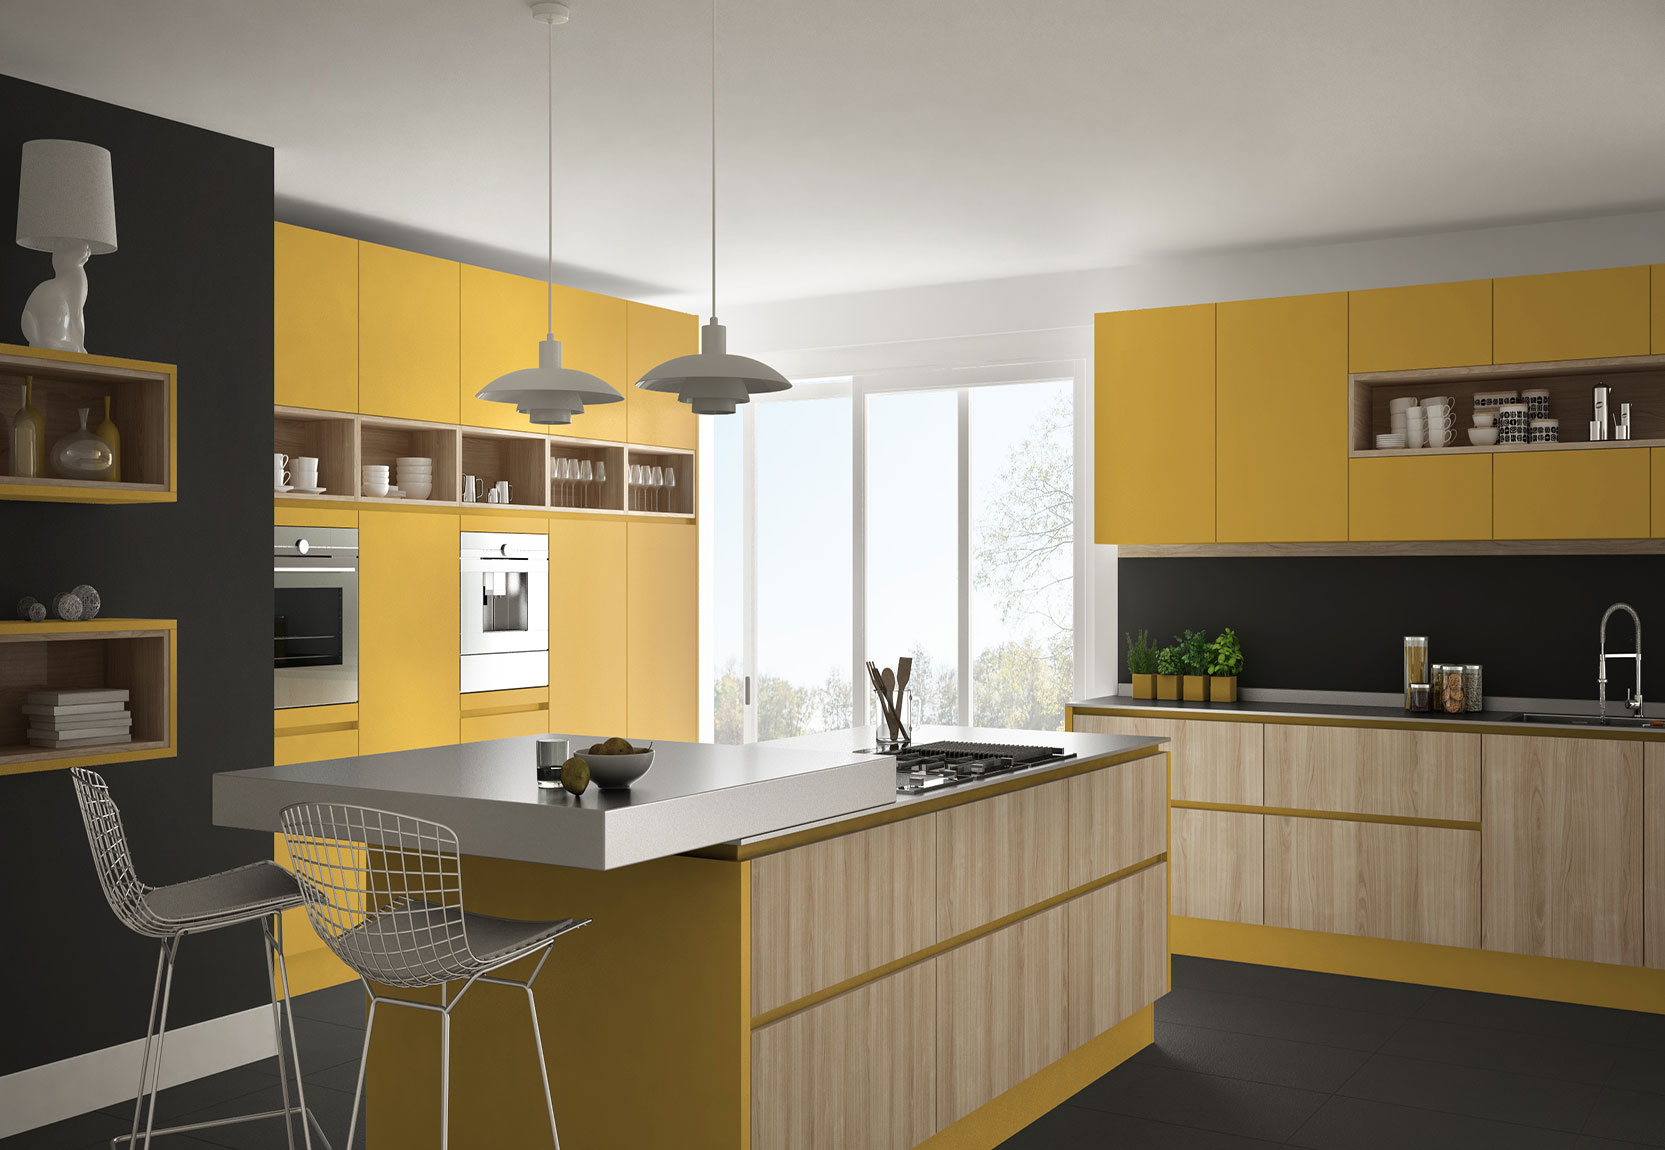 Modular Kitchen Design For Small Area In India Modular Kitchen Designs For Small Kitchens